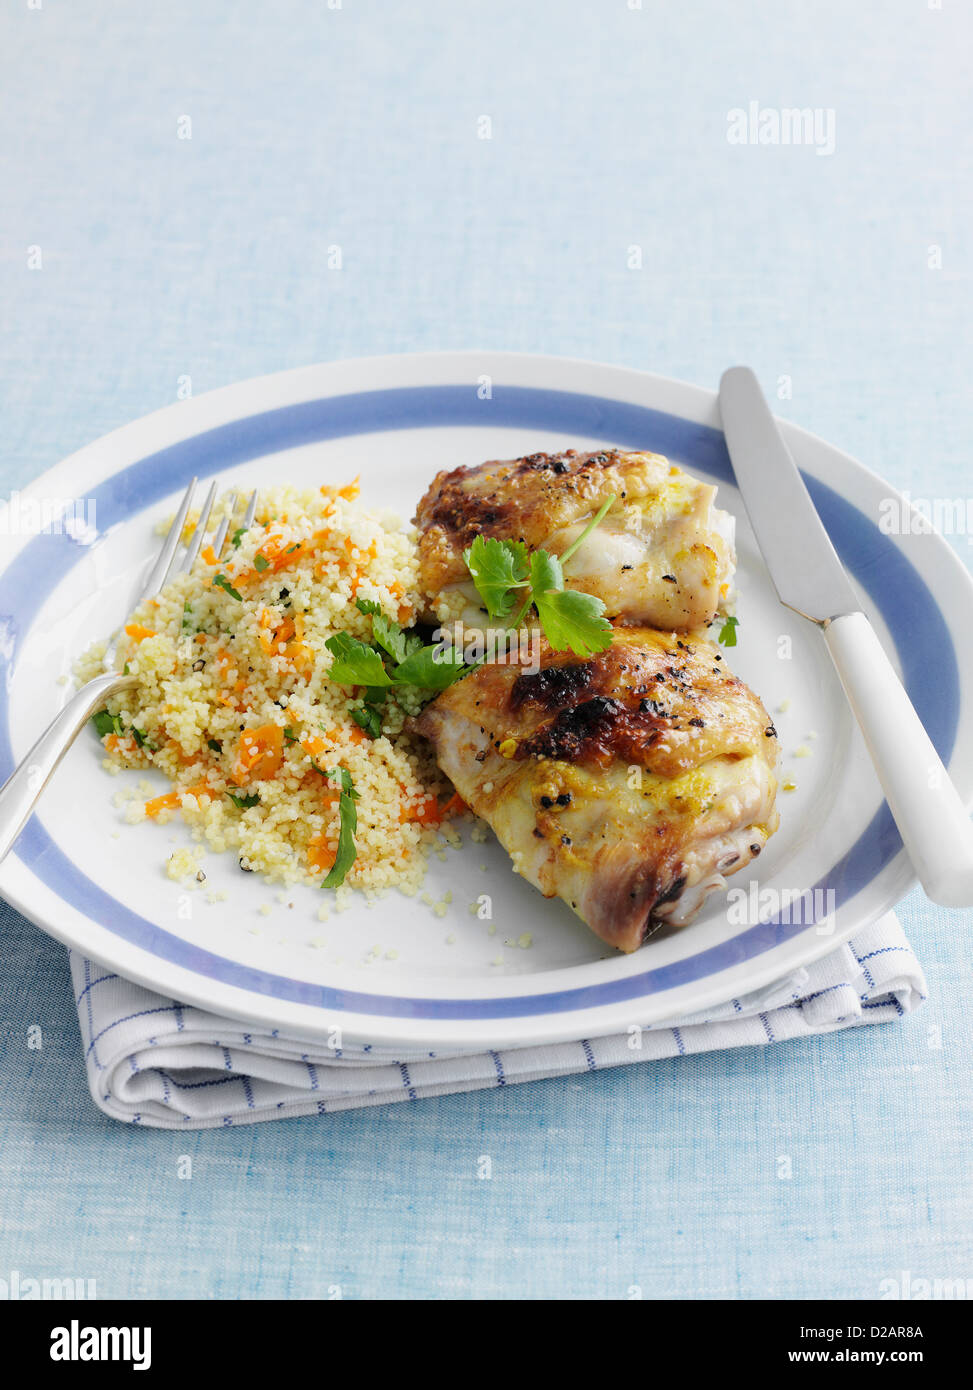 Plate of stuffed chicken with cous cous - Stock Image